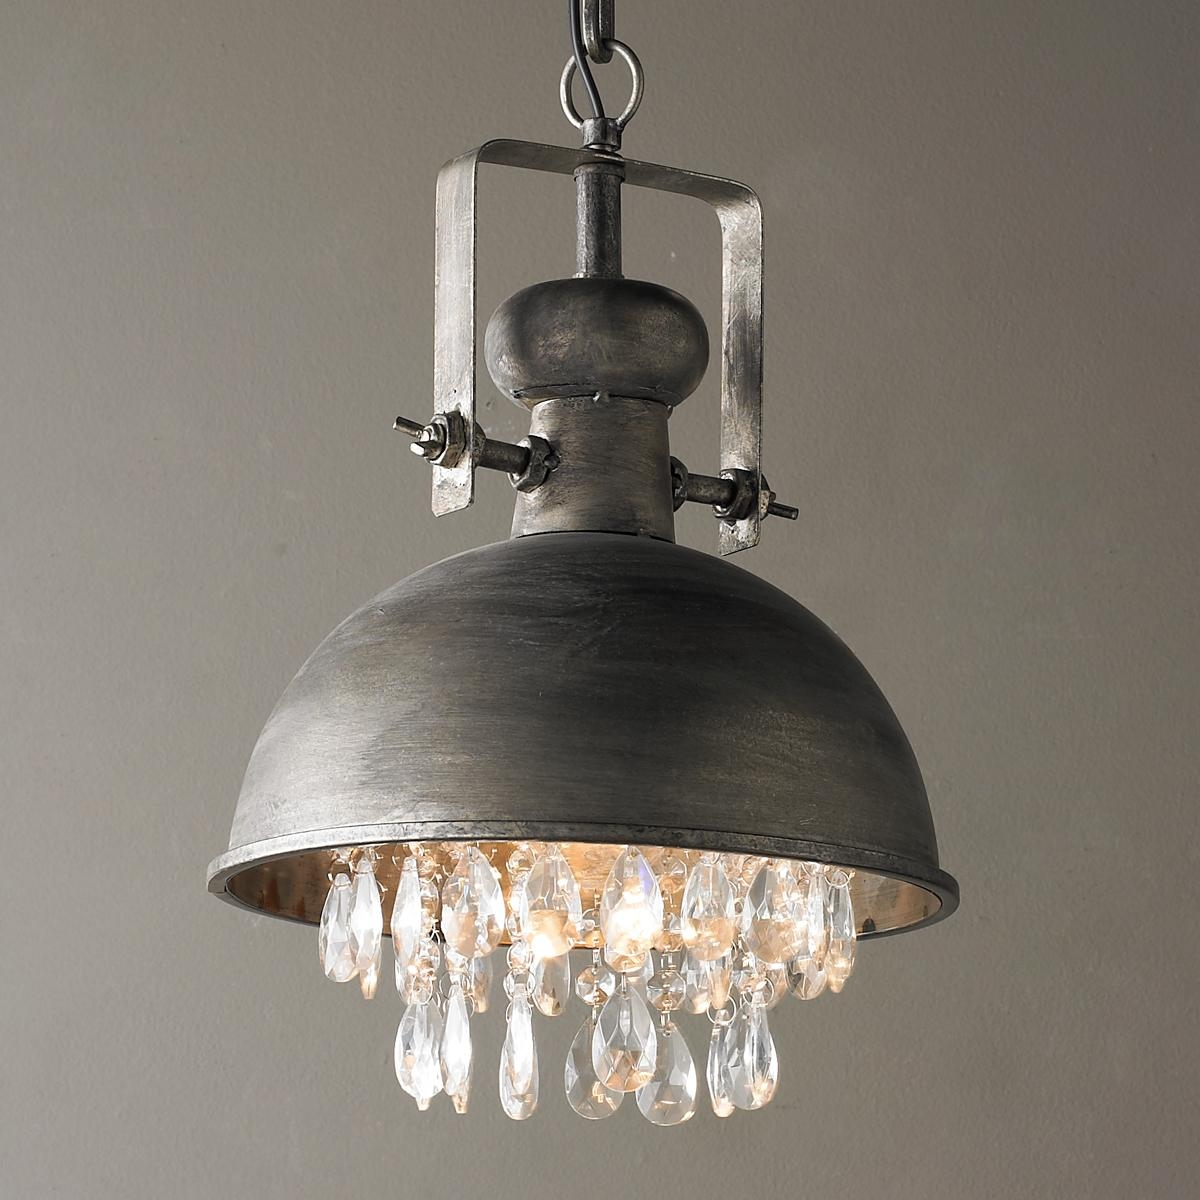 25 Best Small Rustic Chandeliers | Chandelier Ideas